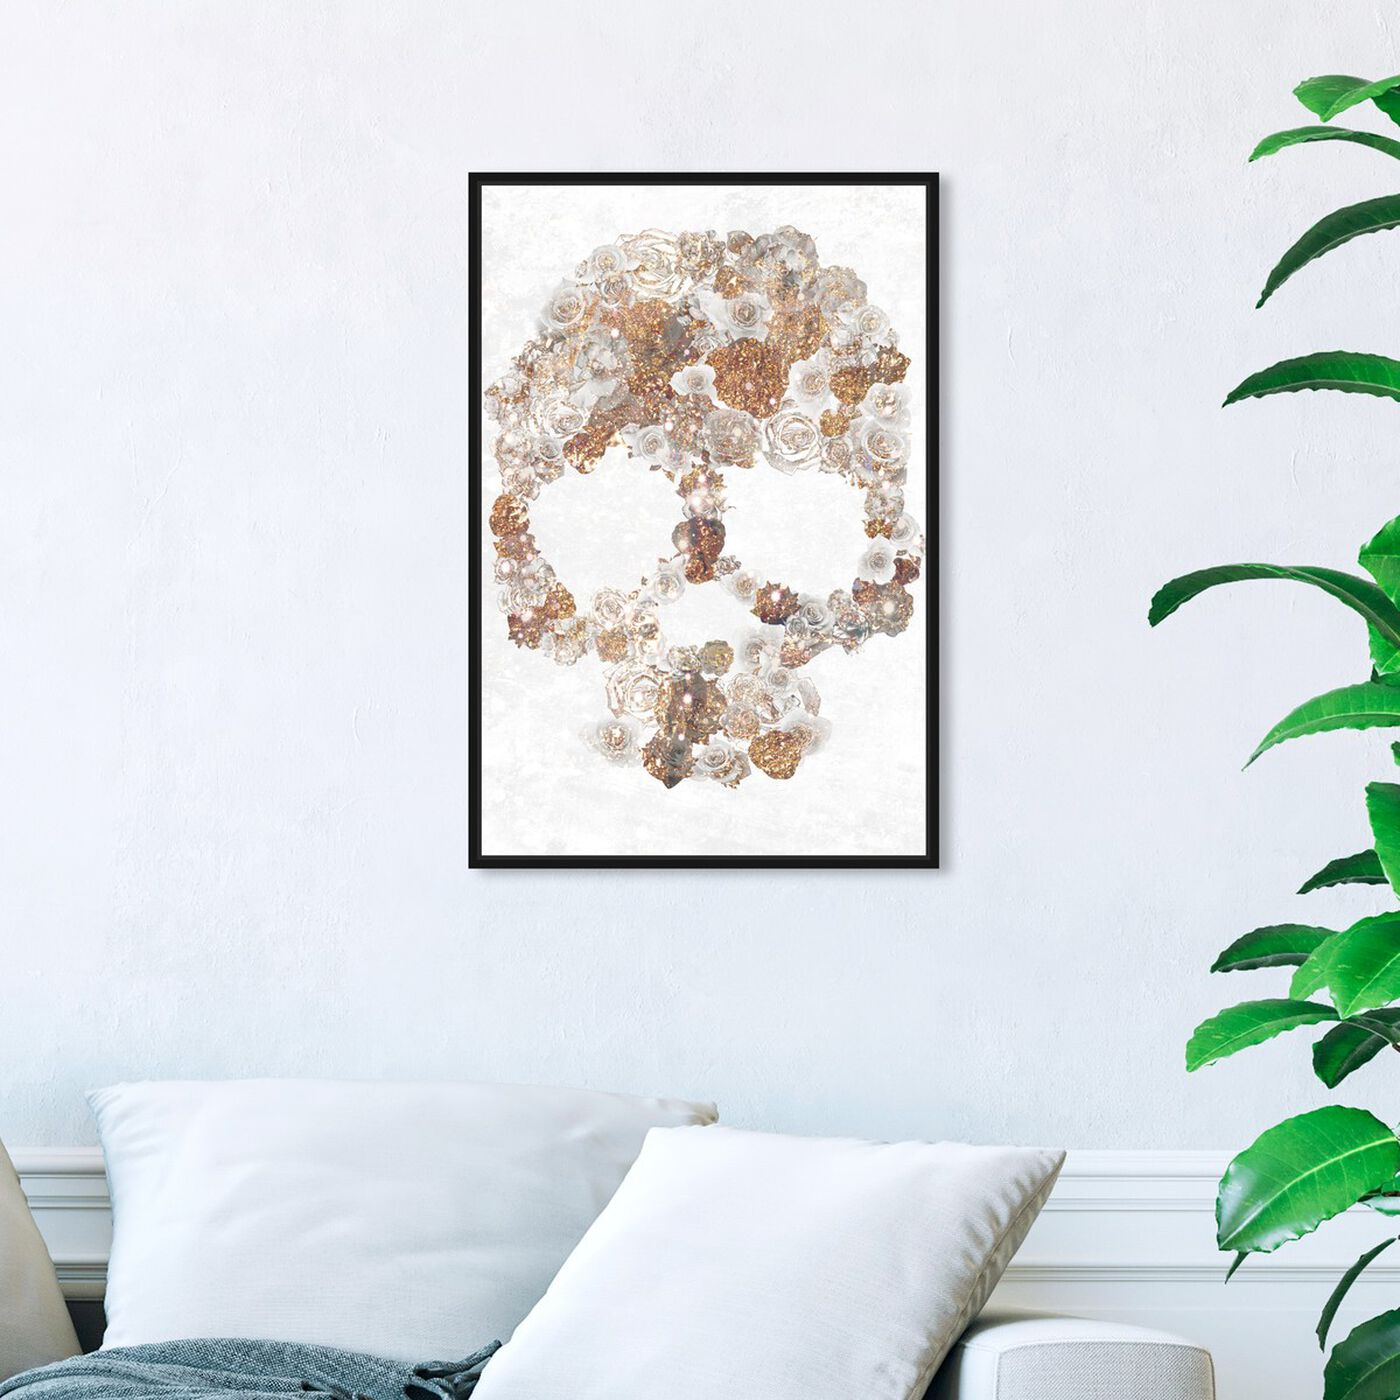 Hanging view of Gold Dust Floral Skull featuring symbols and objects and skull art.